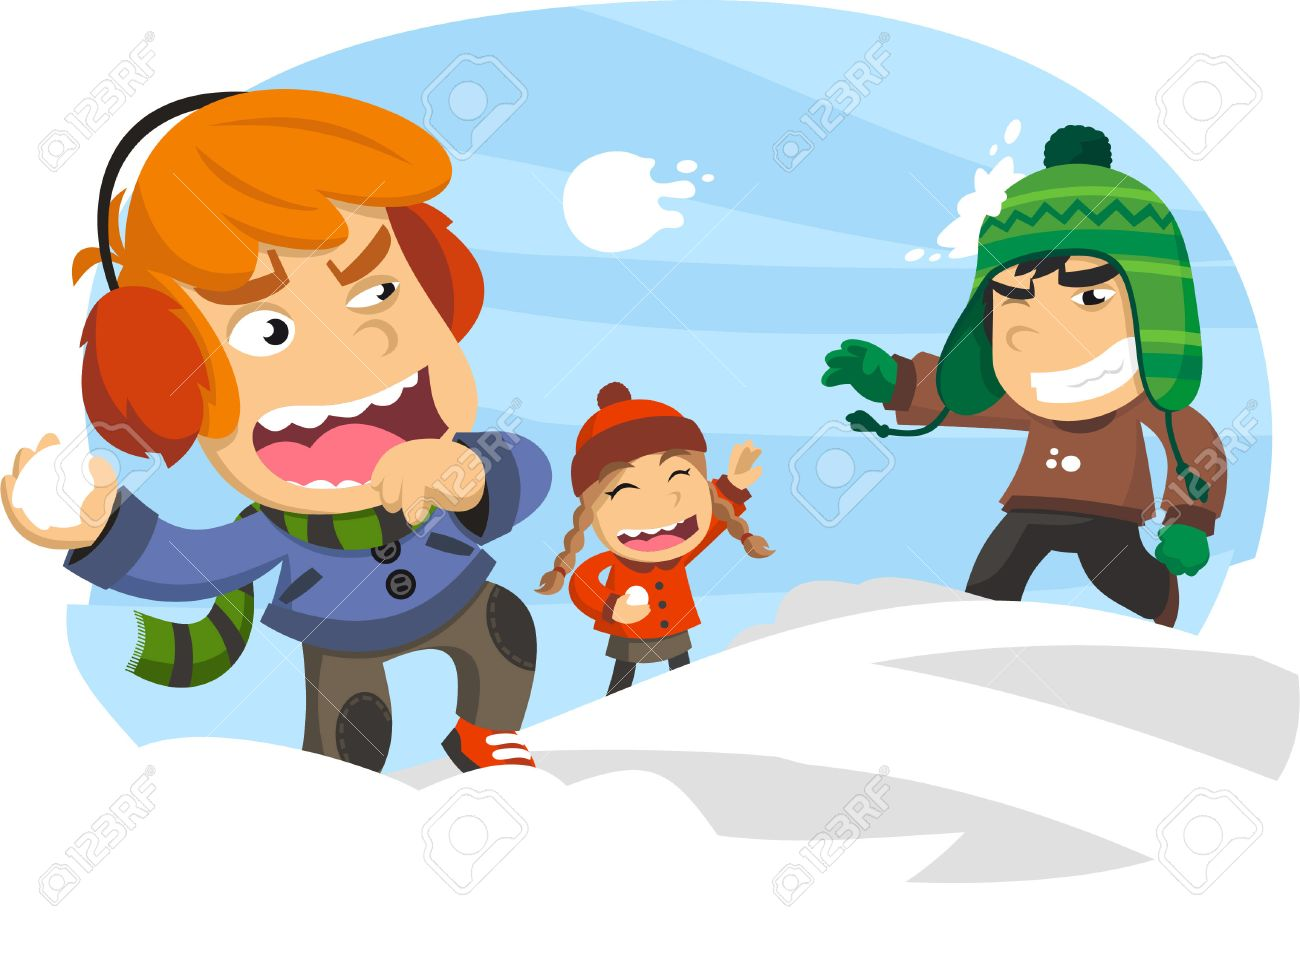 Three Happy Kids In A Snowball Fight, During A Winter Snowy Snow ...